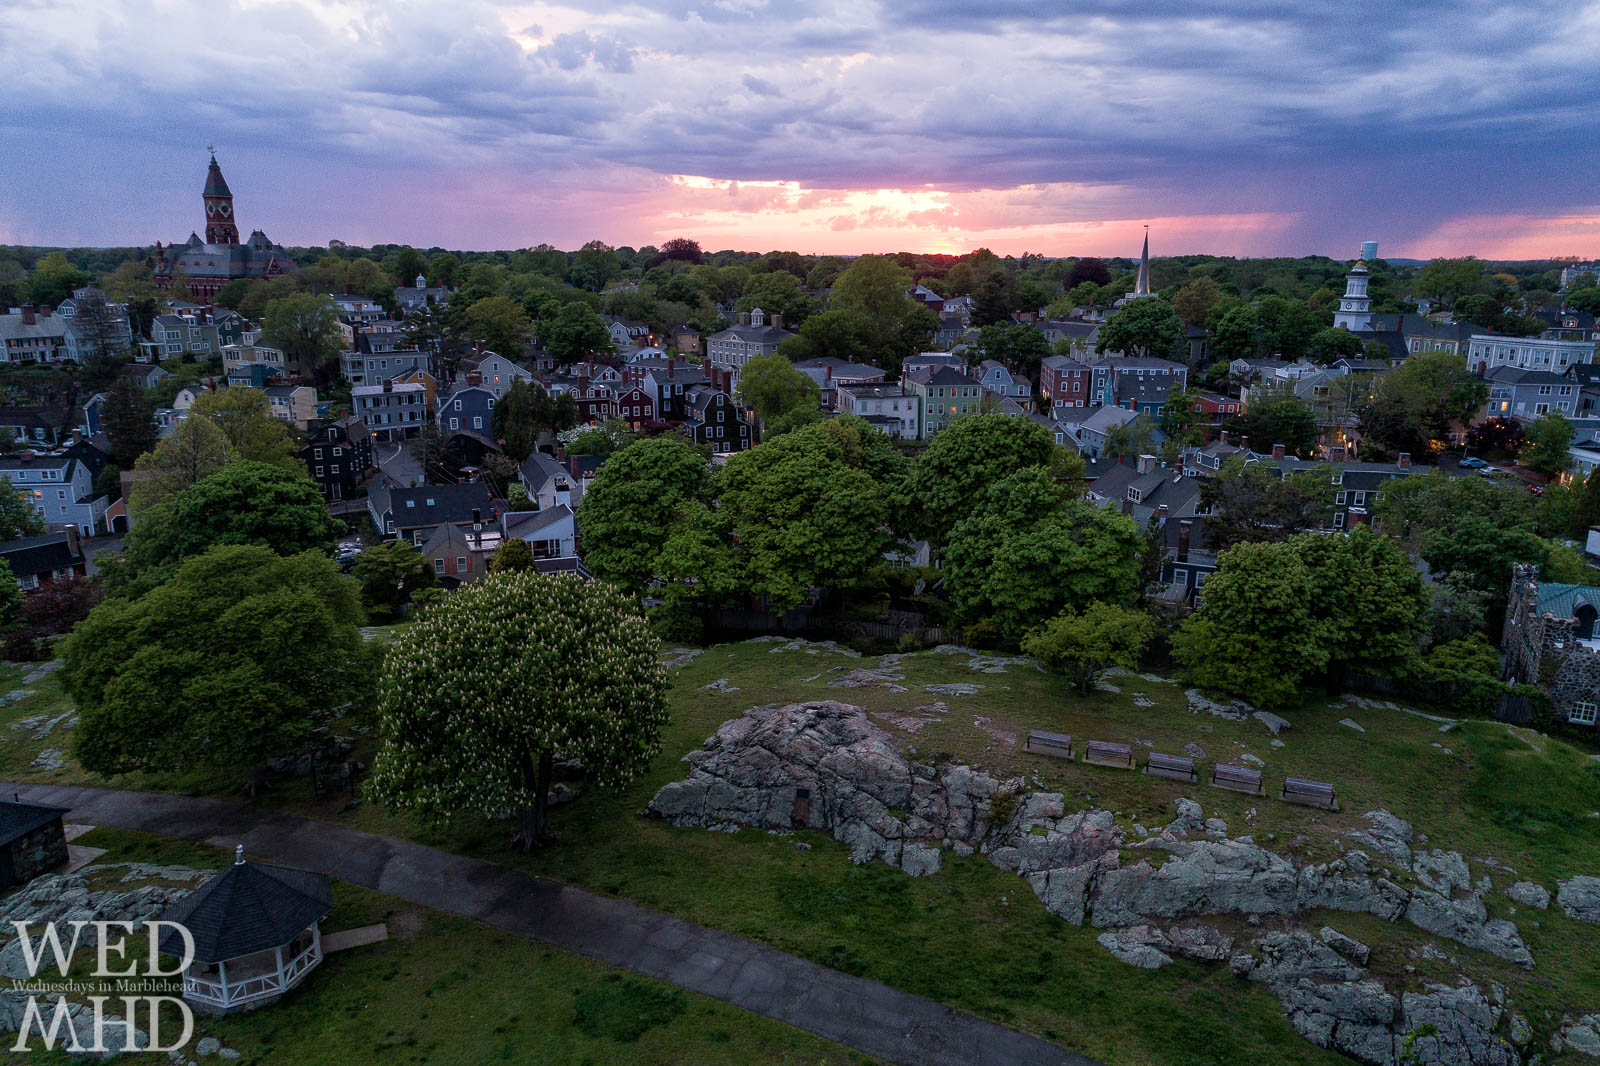 Flying over the chestnut tree at Crocker Park to capture a beautiful sunset above the Marblehead skyline